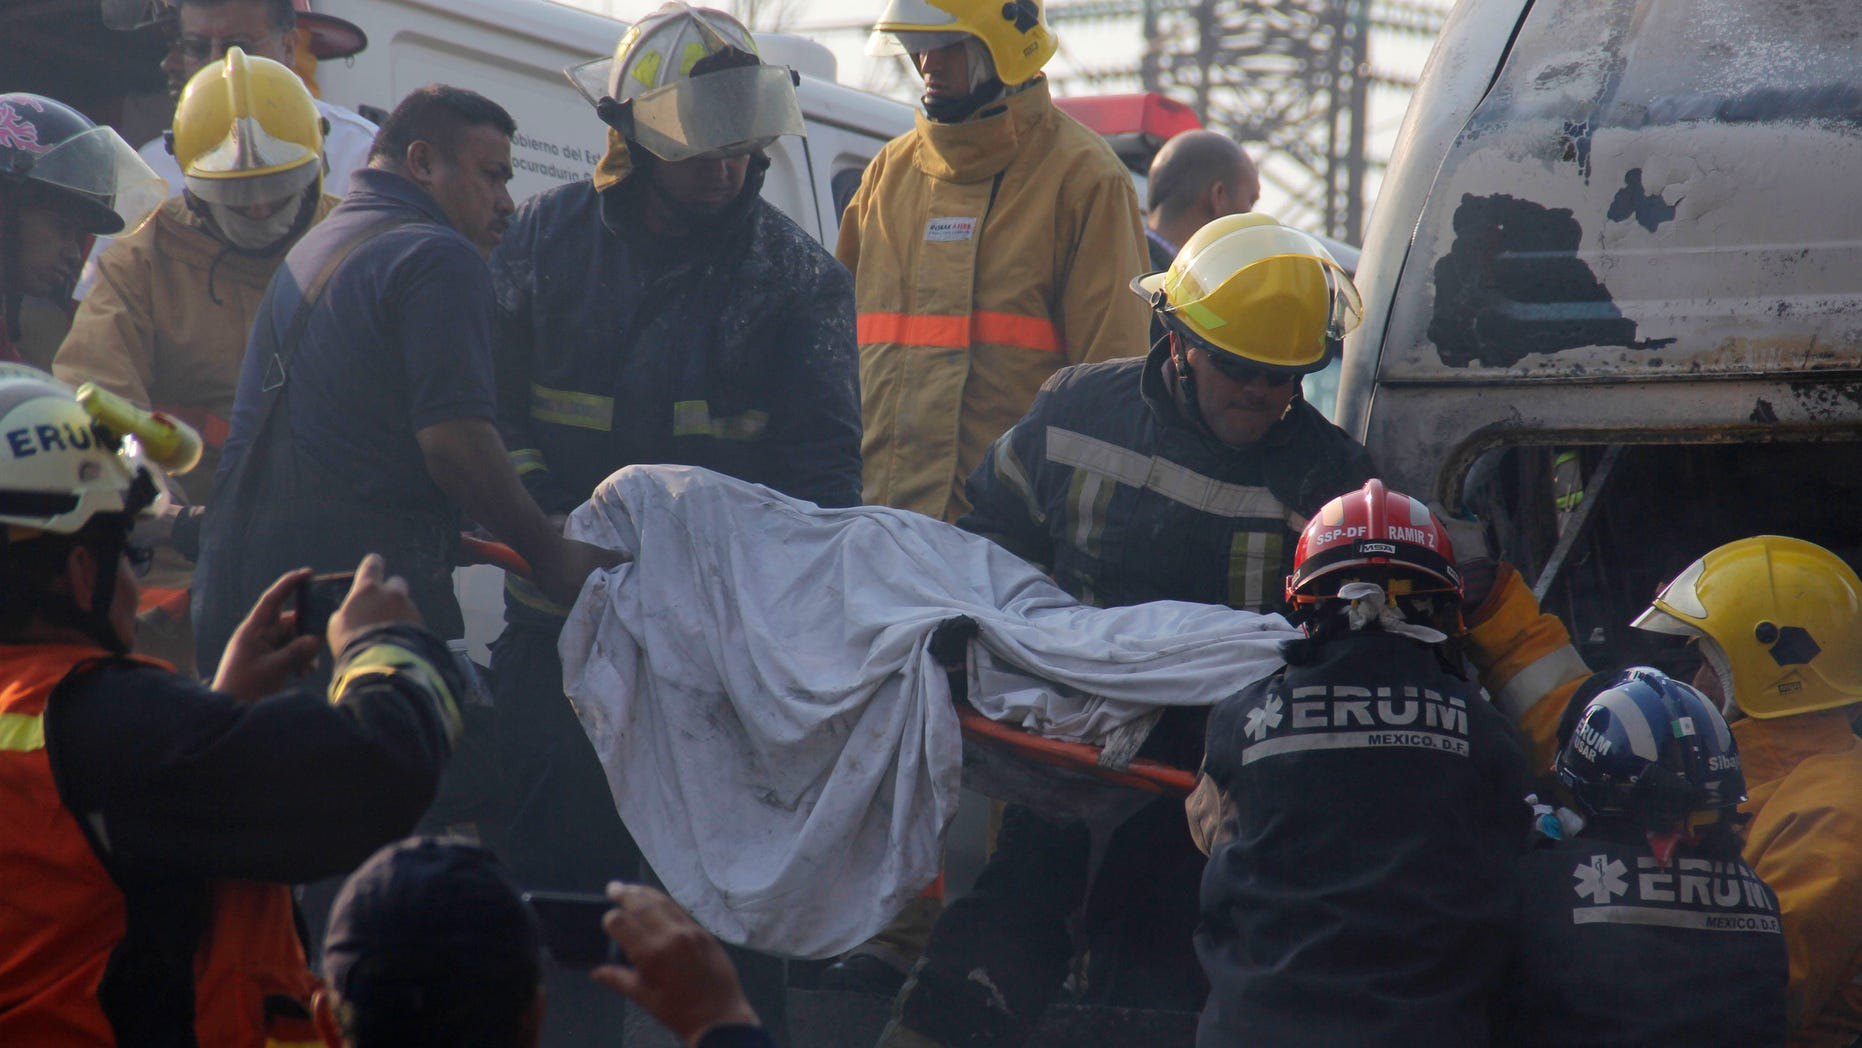 May 7, 2013: Firefighters remove a body from a destroyed home after a gas tanker truck exploded on a nearby highway in the Mexico City suburb of Ecatepec early Tuesday.